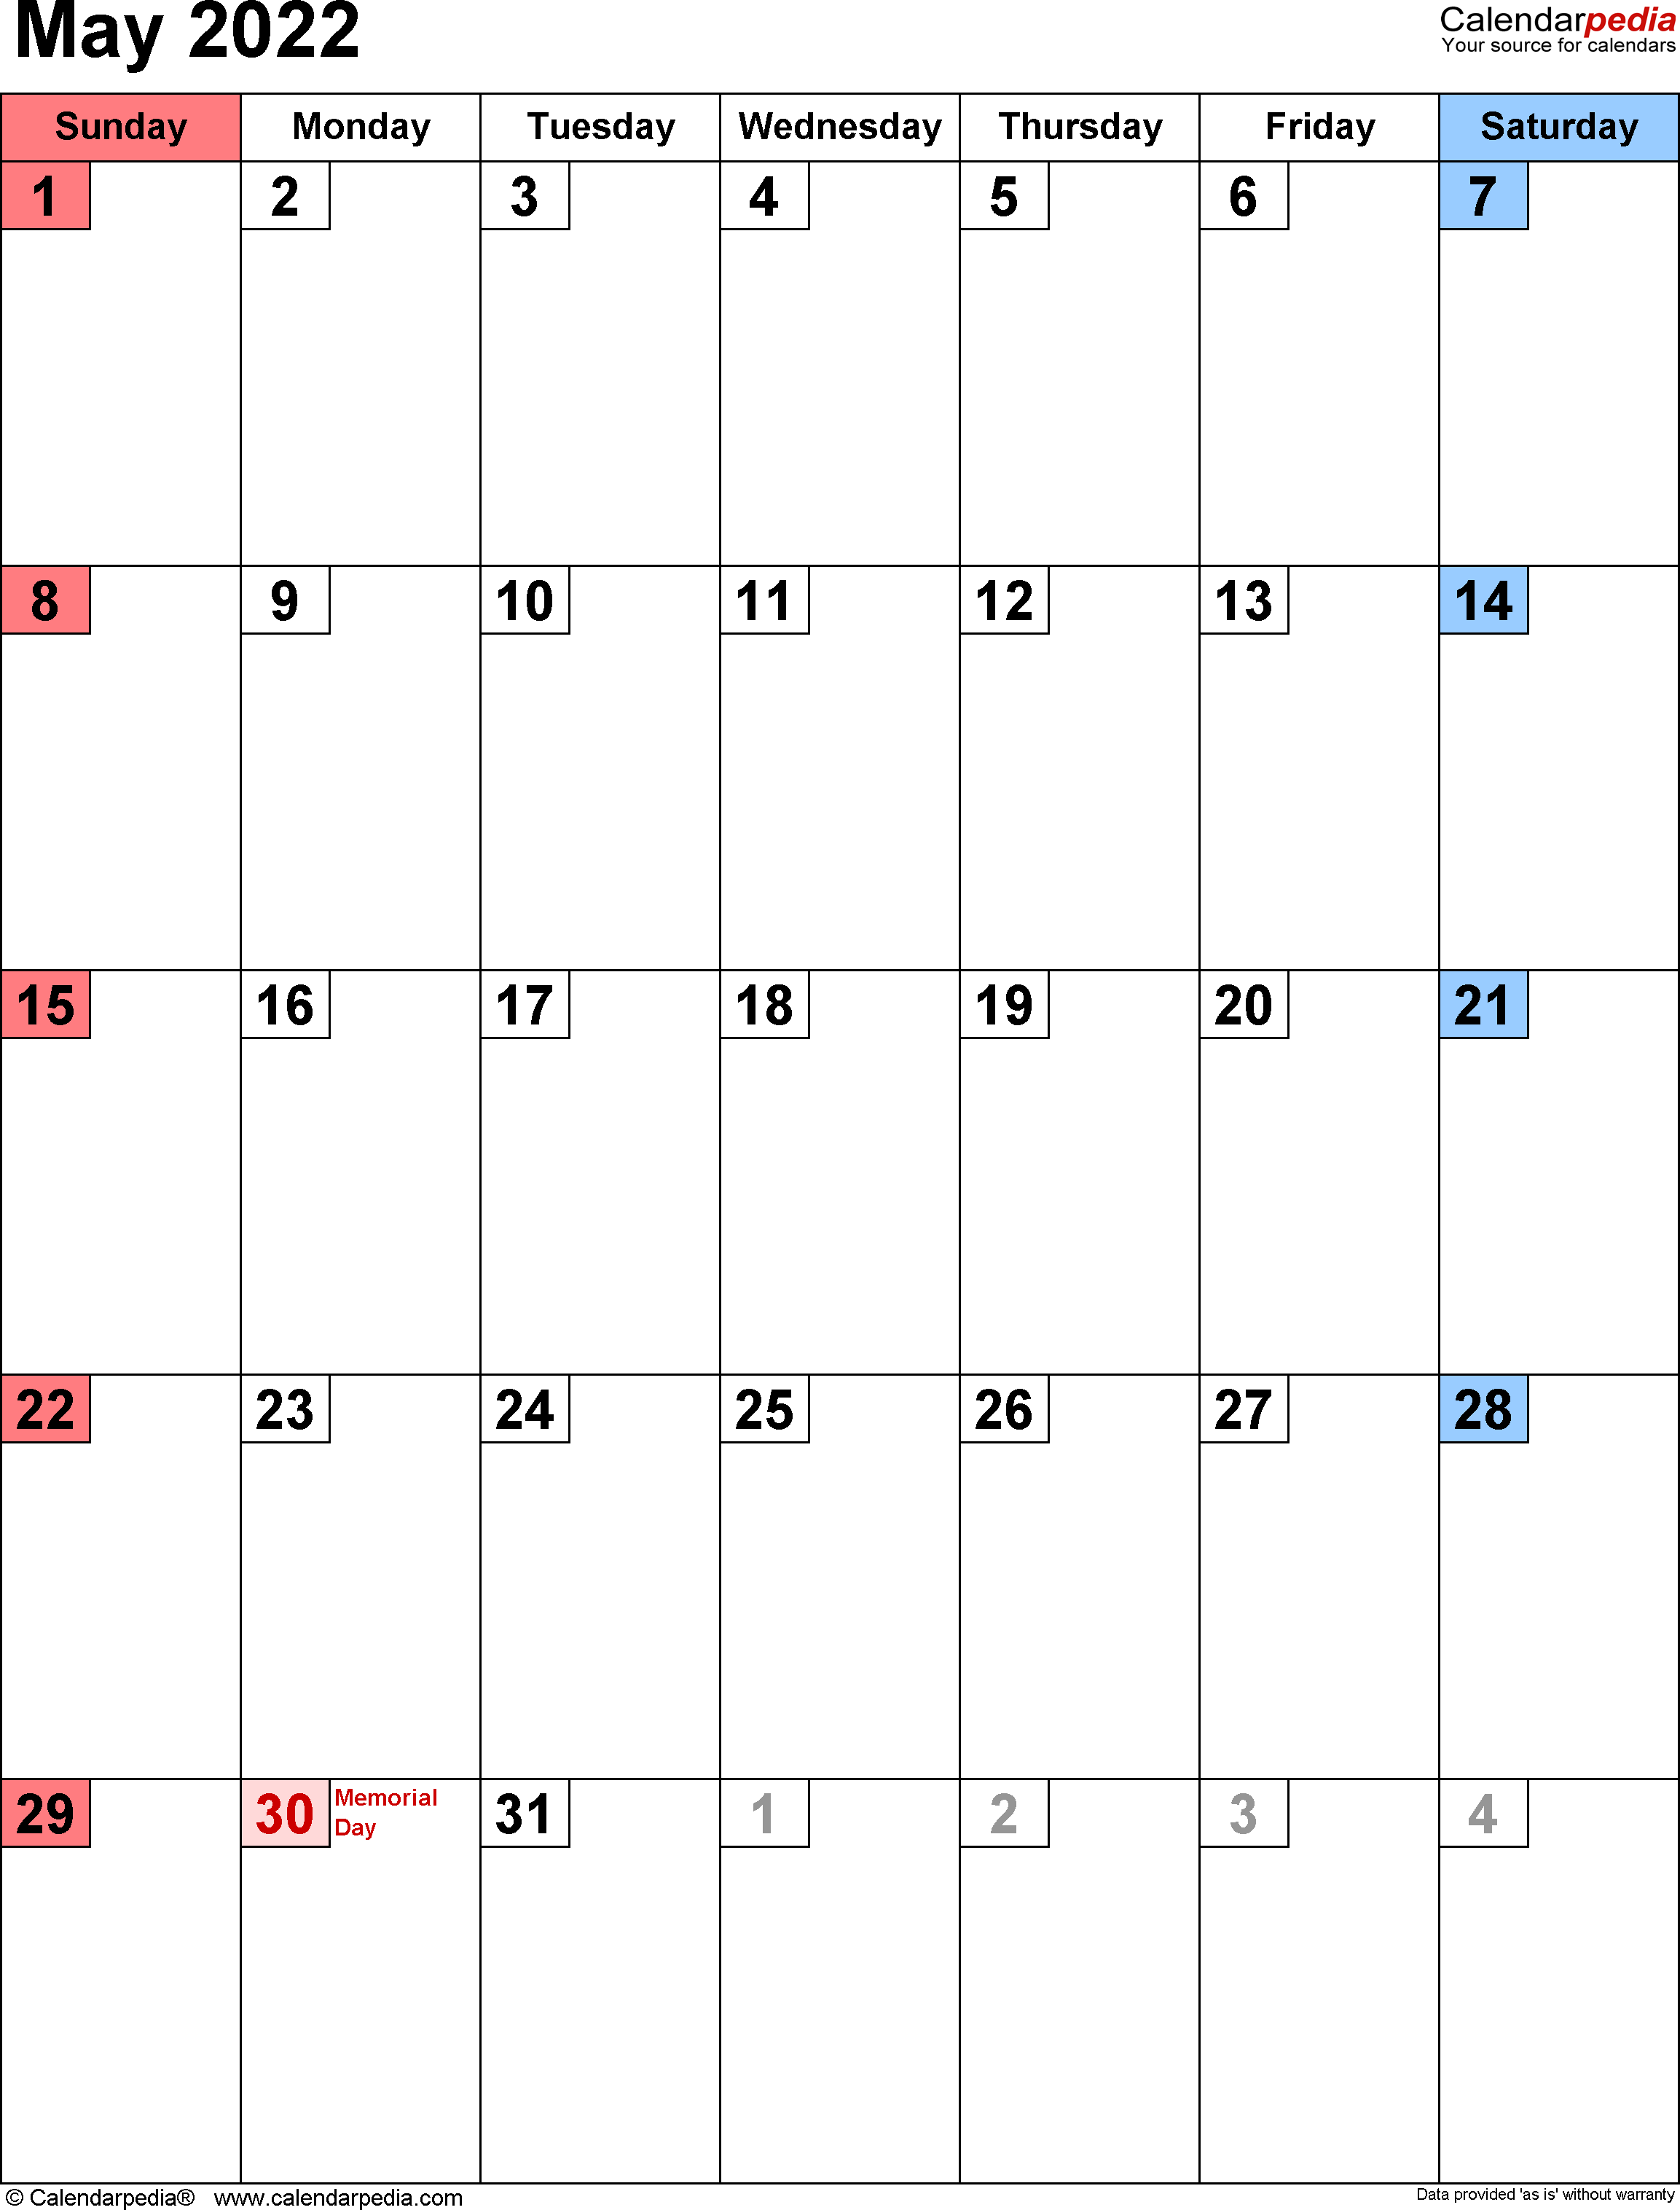 Blank Calendar For May 2022.May 2022 Calendar Templates For Word Excel And Pdf